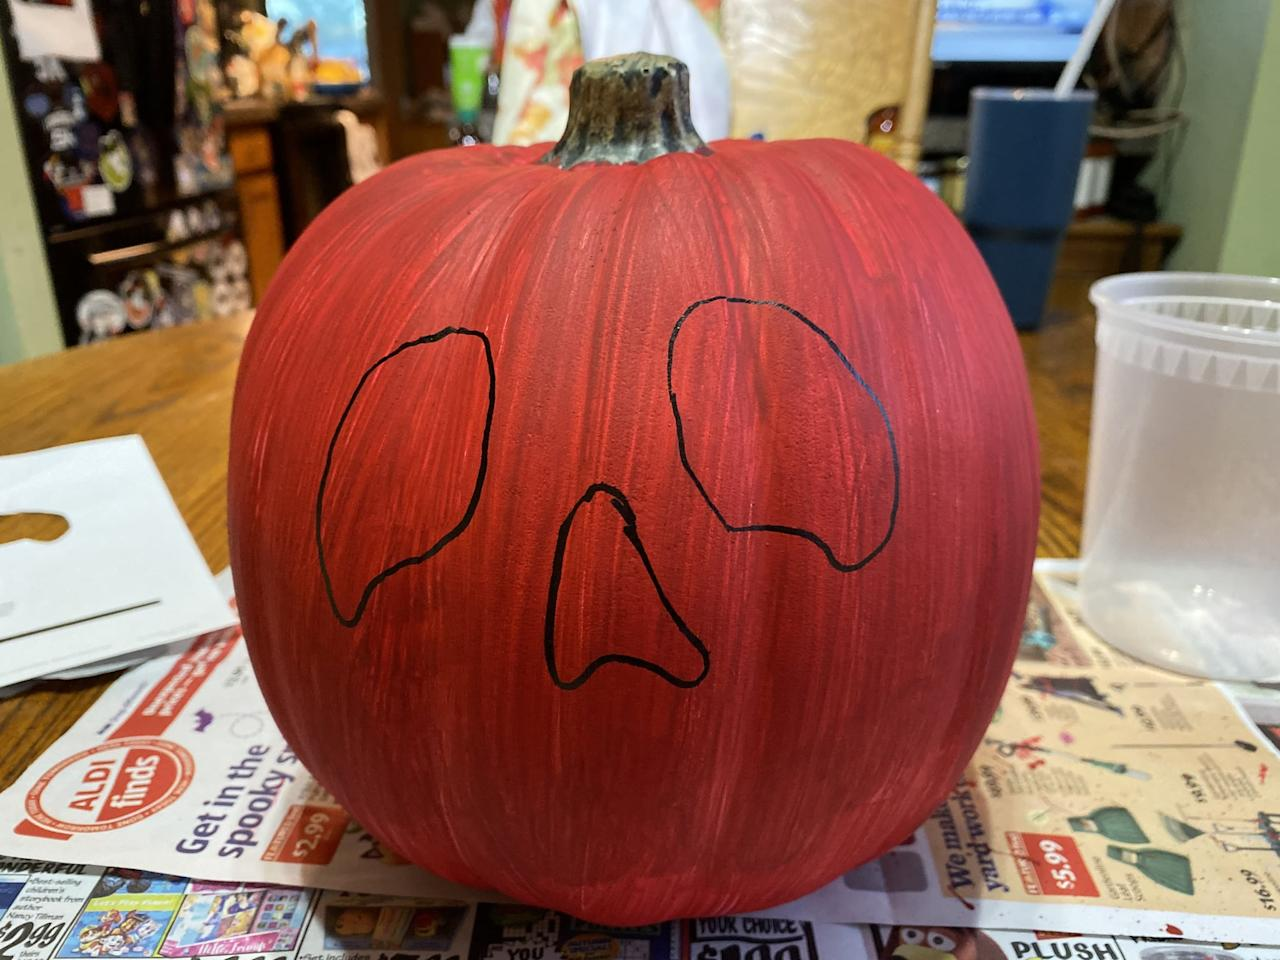 "<p>You can either free-hand the eyes and nose from the poison apple or you can <a href=""https://disneyparks.disney.go.com/blog/2020/10/disneymagicmoments-how-to-create-a-wickedly-wild-poison-apple-pumpkin/?CMP=SOC-DPFY21Q1wo1001200029A"" target=""_blank"" class=""ga-track"" data-ga-category=""internal click"" data-ga-label=""https://disneyparks.disney.go.com/blog/2020/10/disneymagicmoments-how-to-create-a-wickedly-wild-poison-apple-pumpkin/?CMP=SOC-DPFY21Q1wo1001200029A"" data-ga-action=""body text link"">print the stencil</a> from the Disney Parks Blog website. I chose to use the stencil so I didn't mess anything up.</p>"